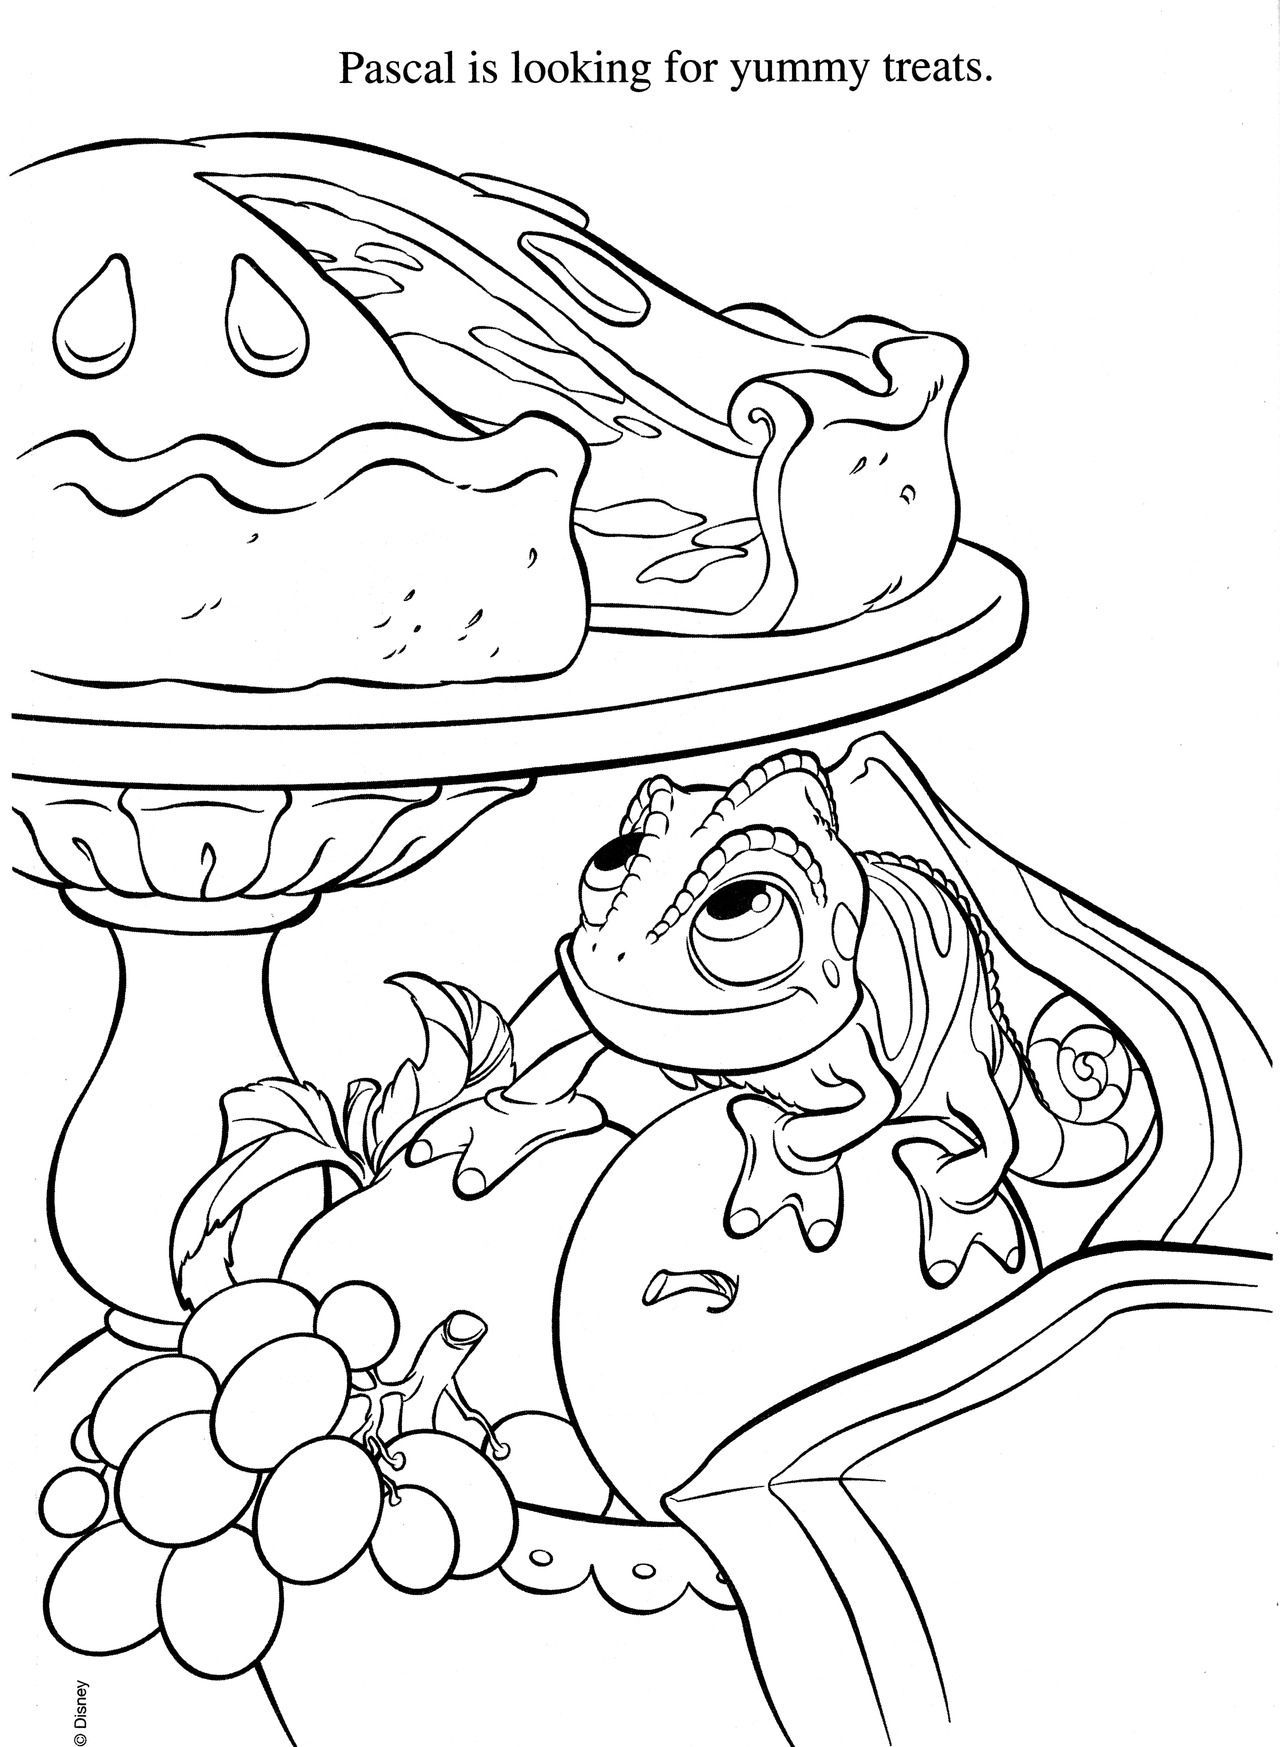 disney movies coloring pages  months ago with 10 notes Coloriage